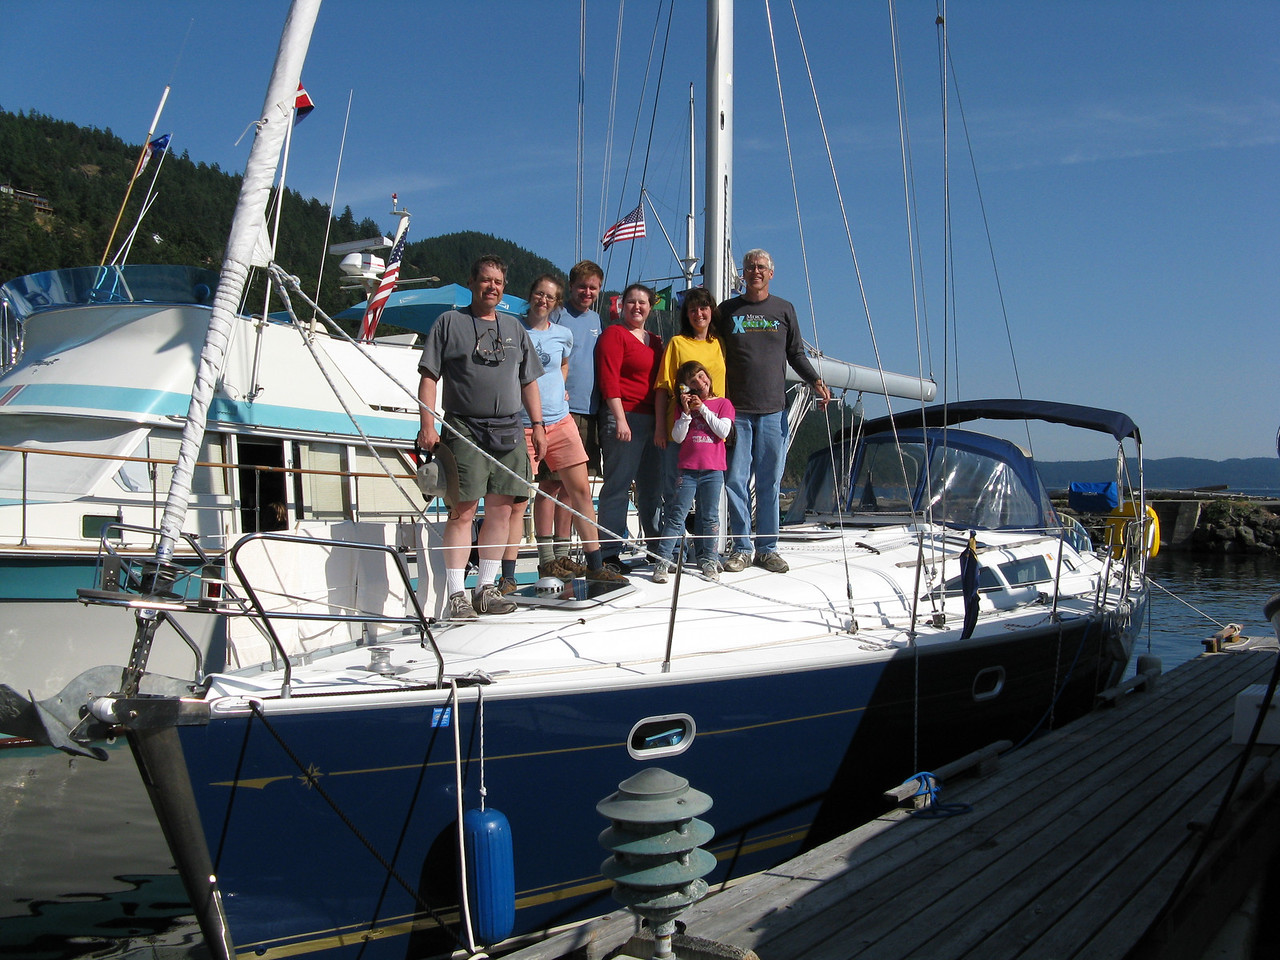 The crew on deck at Rosario Marina on Orcas Island..   (L to R) Martin, Ann, Nathan, Keegan, Sonia, Abby (in front) and Glenn.  The sailboat is a 40 foot Jeanneau named Salus rented from Anacortes Yacht Charters.